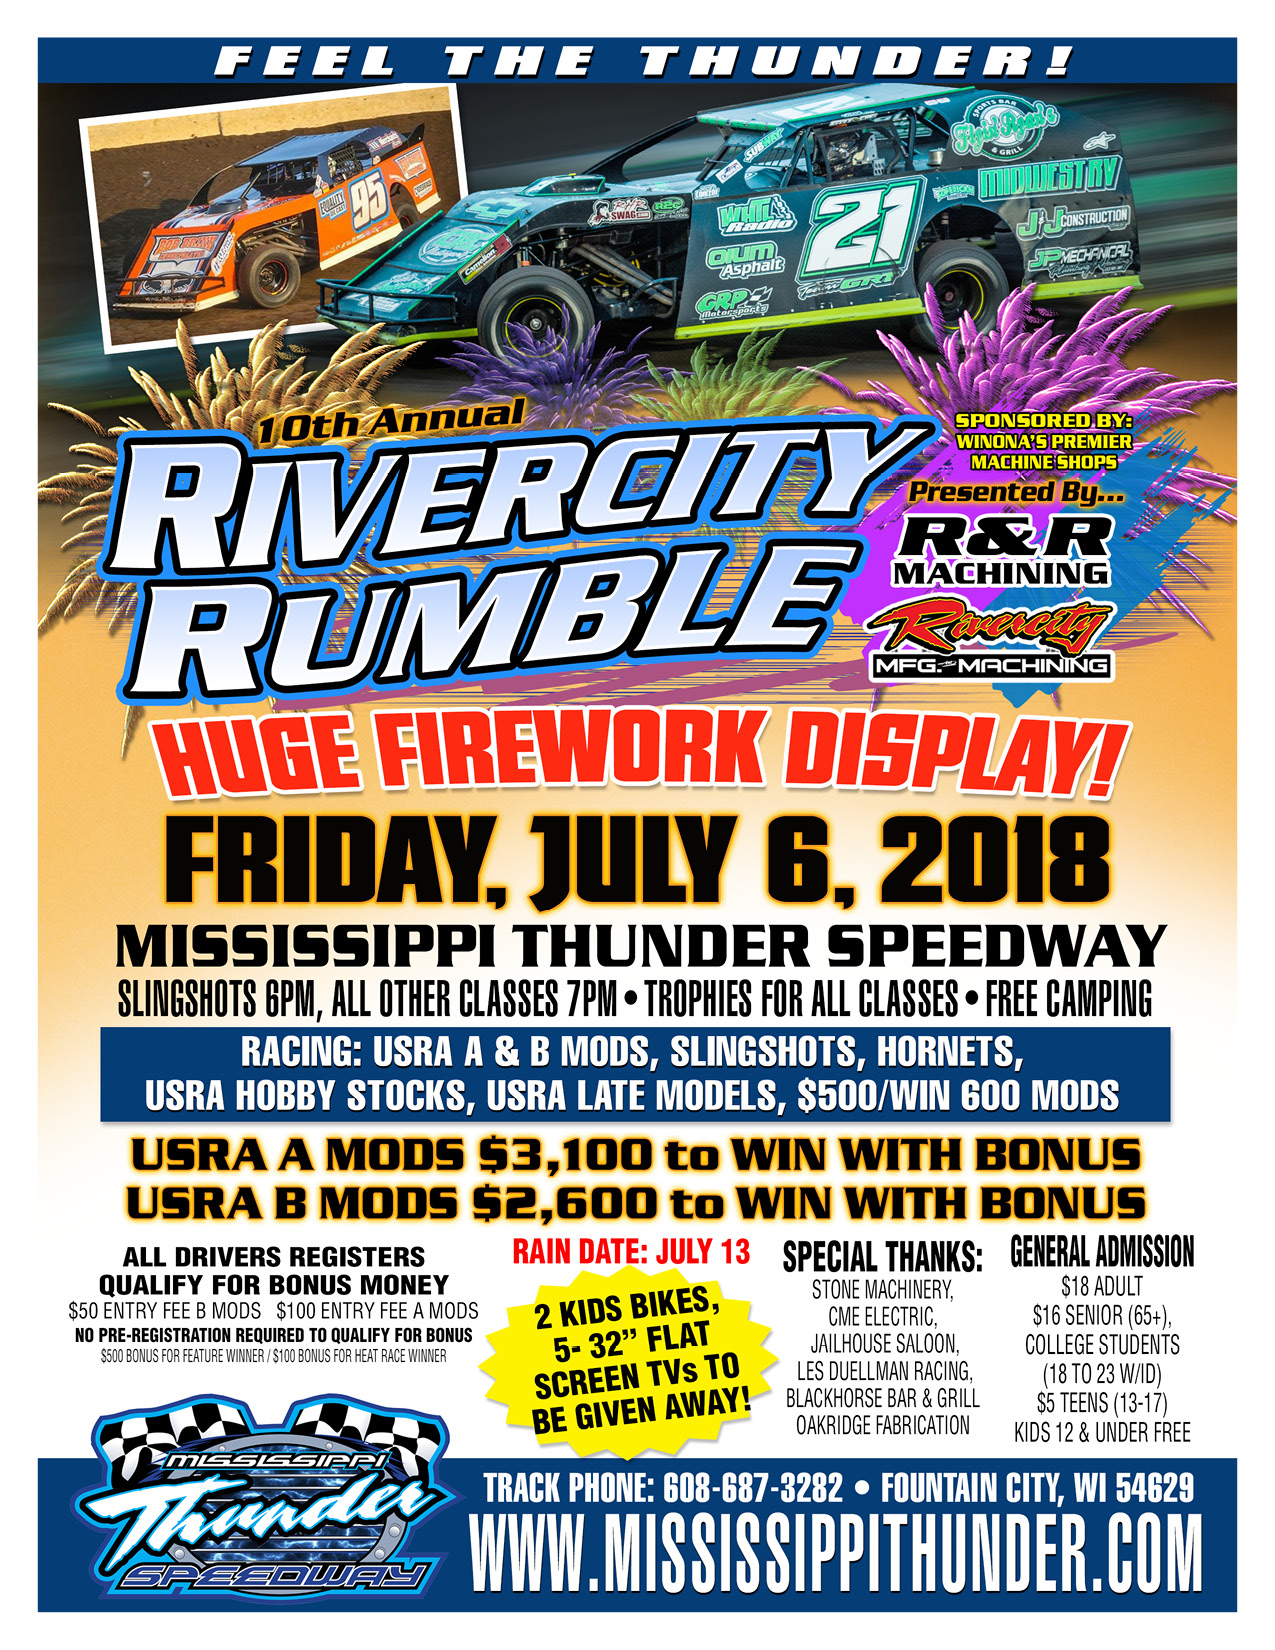 Rivercity Rumble poster!